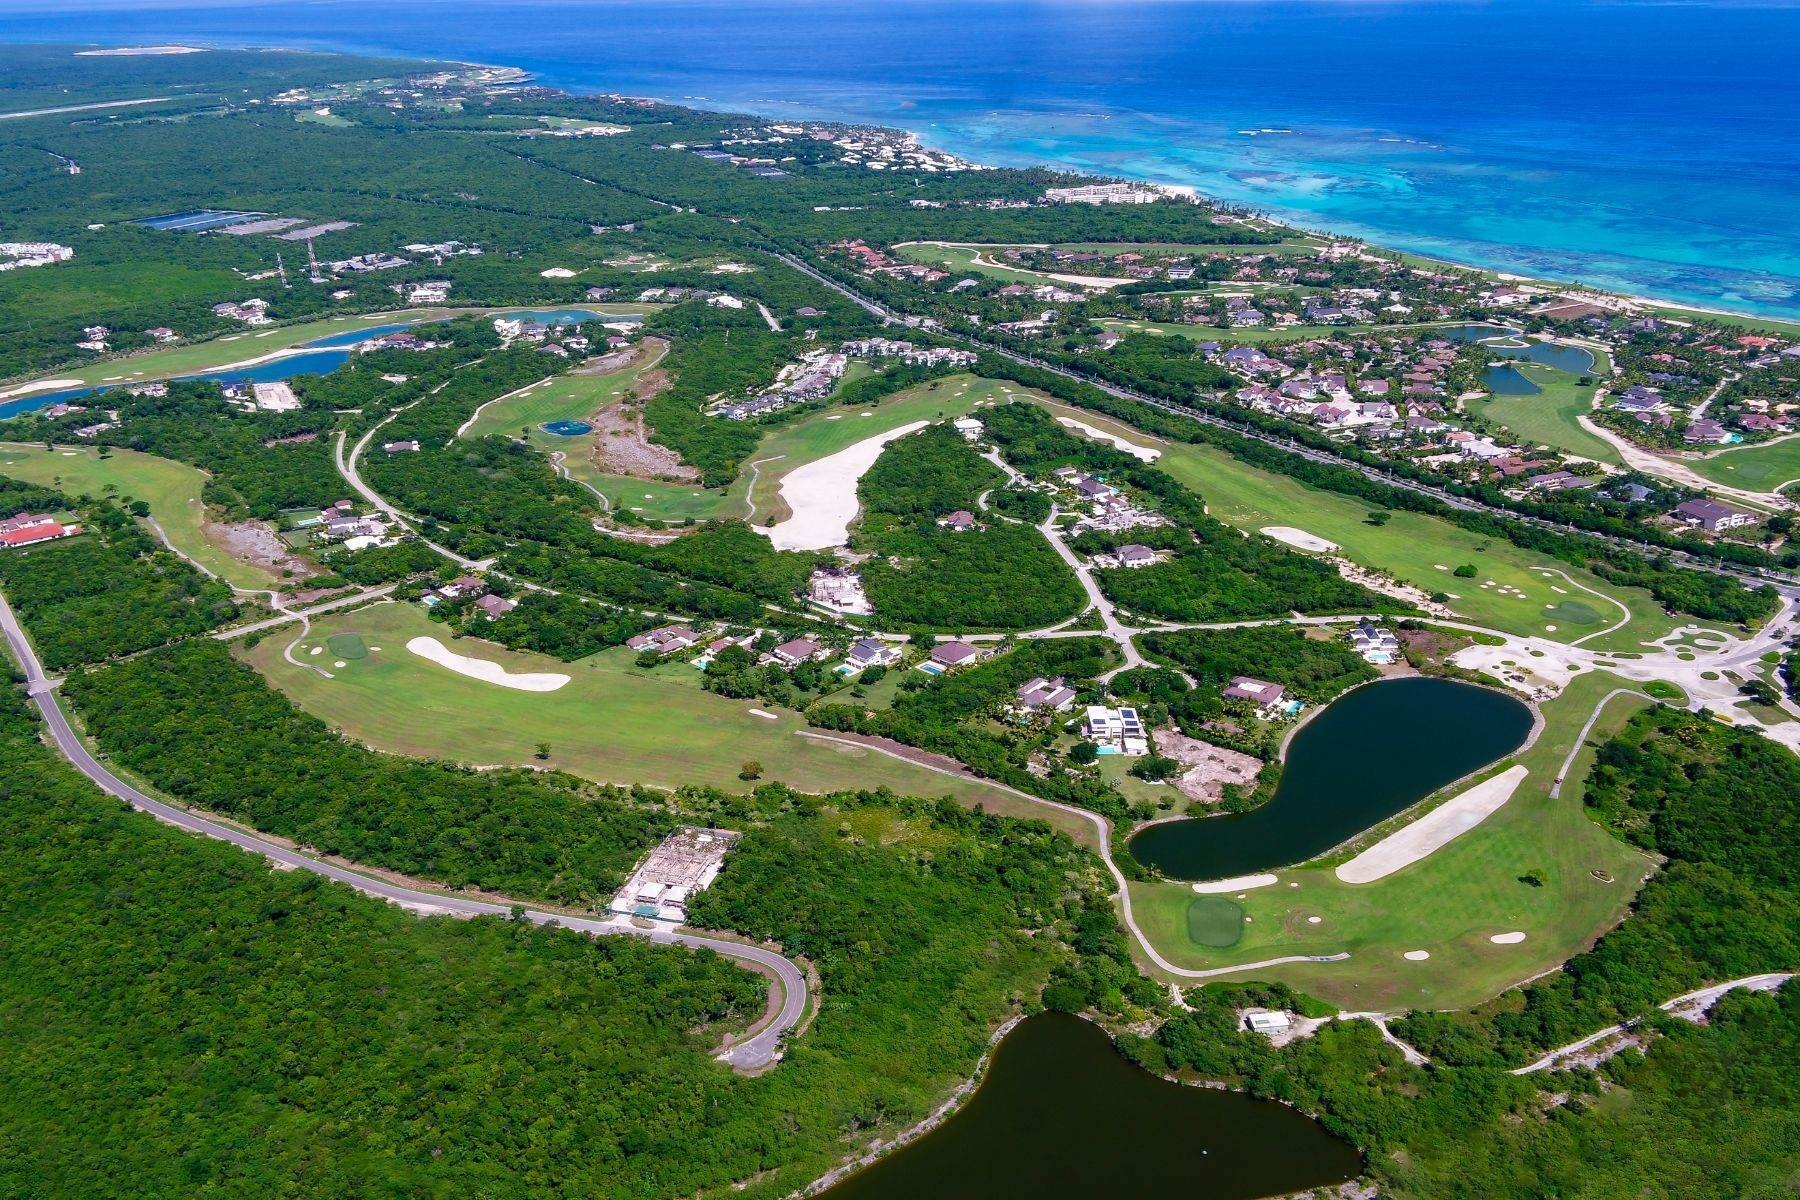 Land for Sale at Hacienda # C-28 – East-Facing Golf View Parcel close to the Beach Hacienda # C-28, Punta Cana Resort Punta Cana, La Altagracia 23000 Dominican Republic